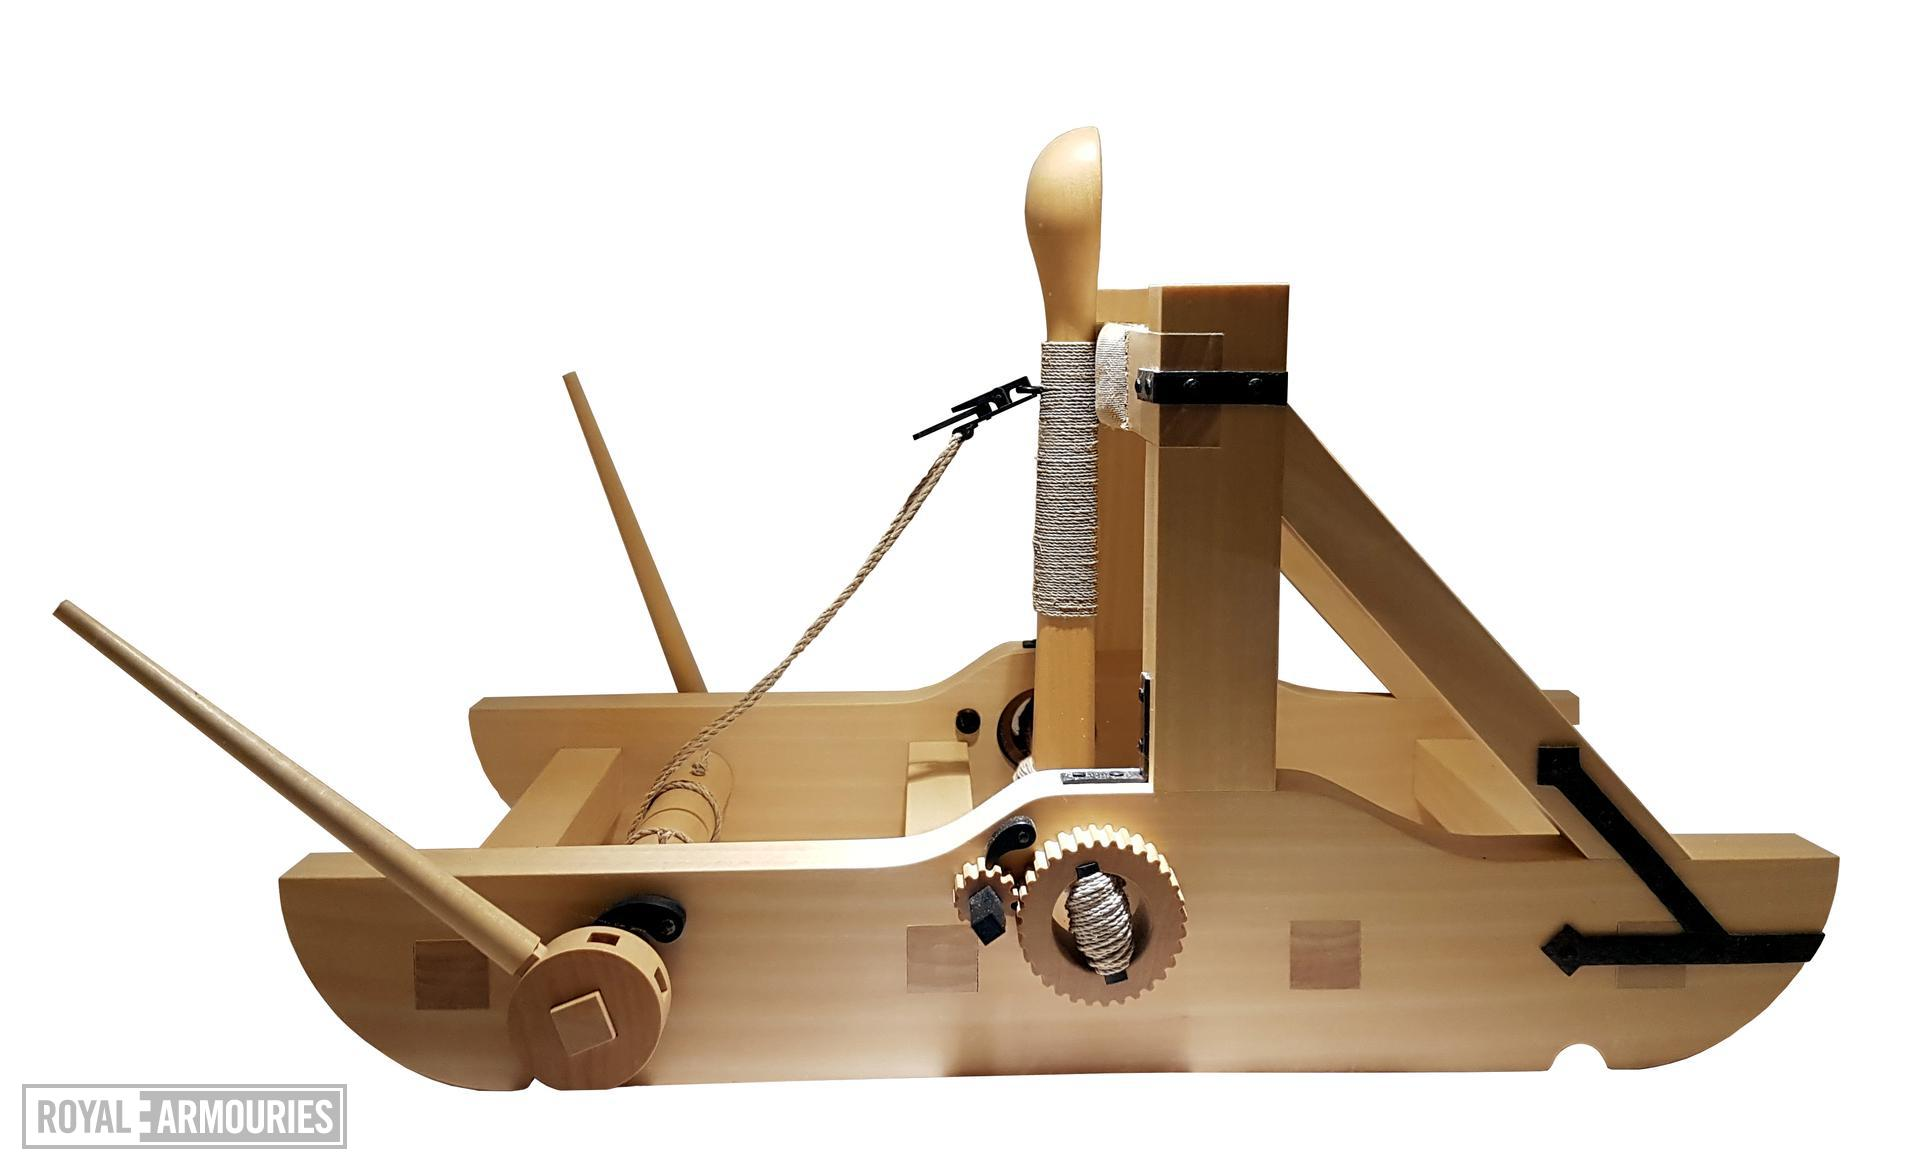 Wooden model of a torsion catapult or mangon. The throwing arm terminates in a carved wooden cup. The arm is thrust through a skein of twisted cords with the pressure being maintained via blackened metal ratchets at each side, and adjusted by a blackened metal lever. There are two removable wooden levers for turning the windlass in order to haul back the throwing arm. British, 1994 (M.92)